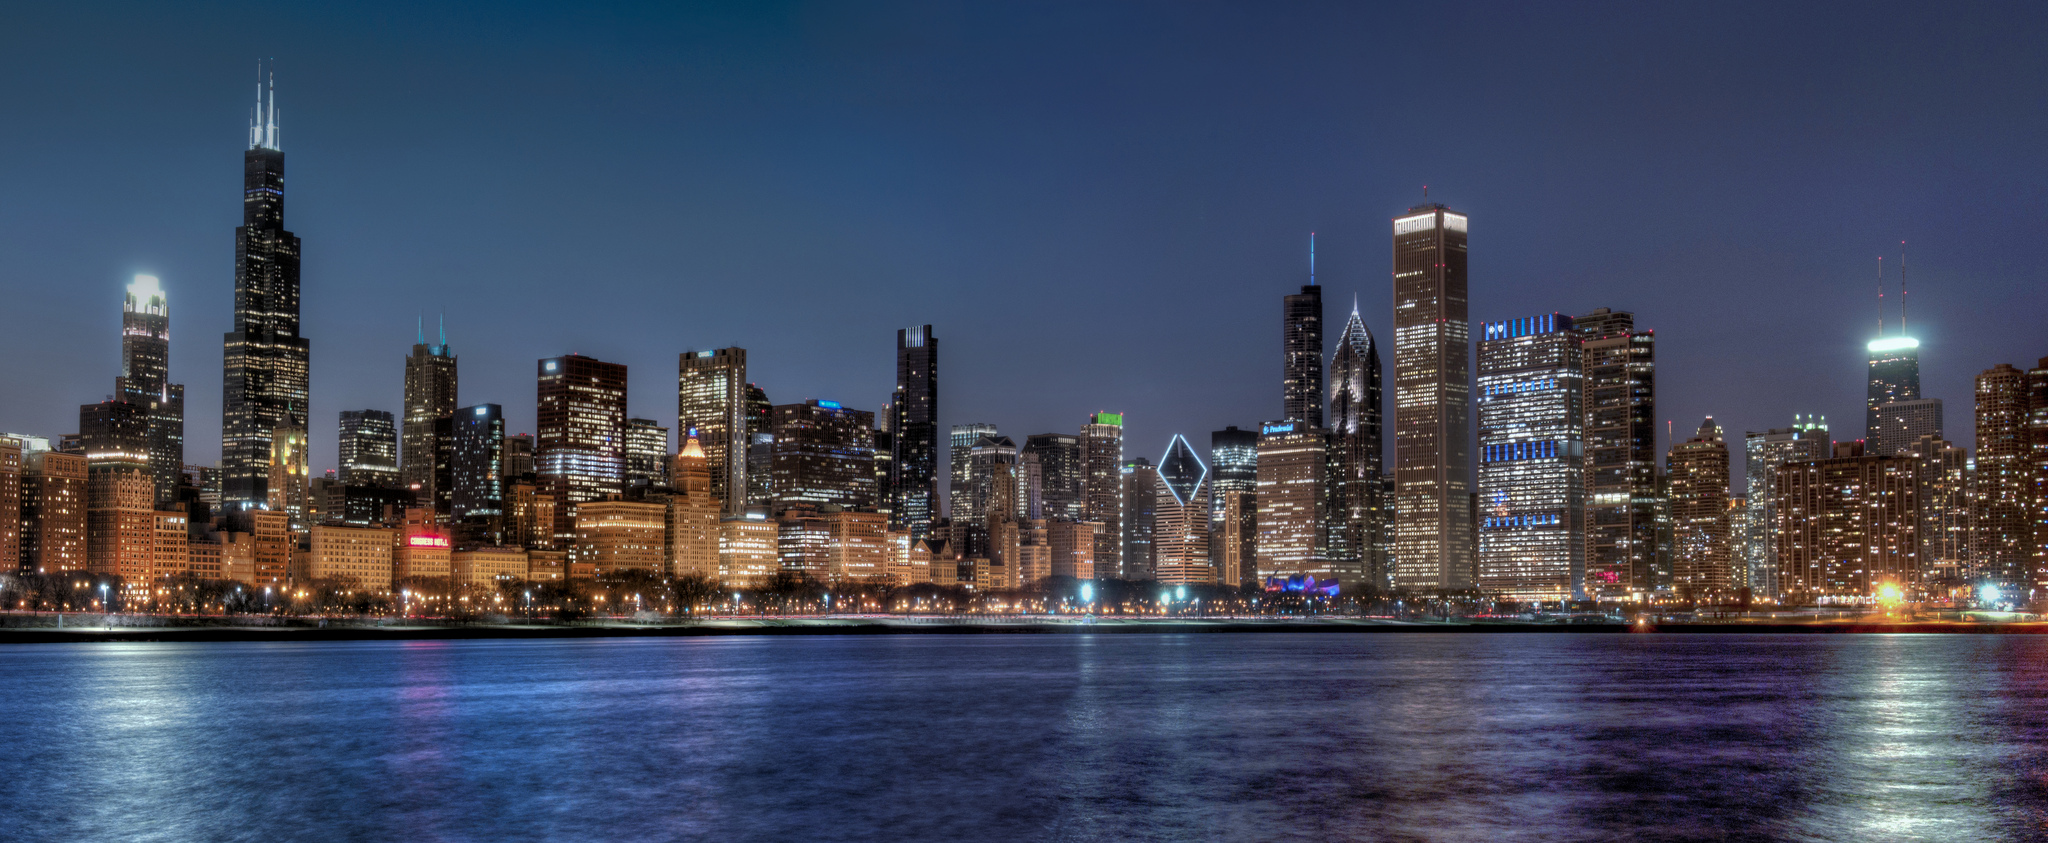 3d Wallpaper New York City Chicago City In Illinois Thousand Wonders